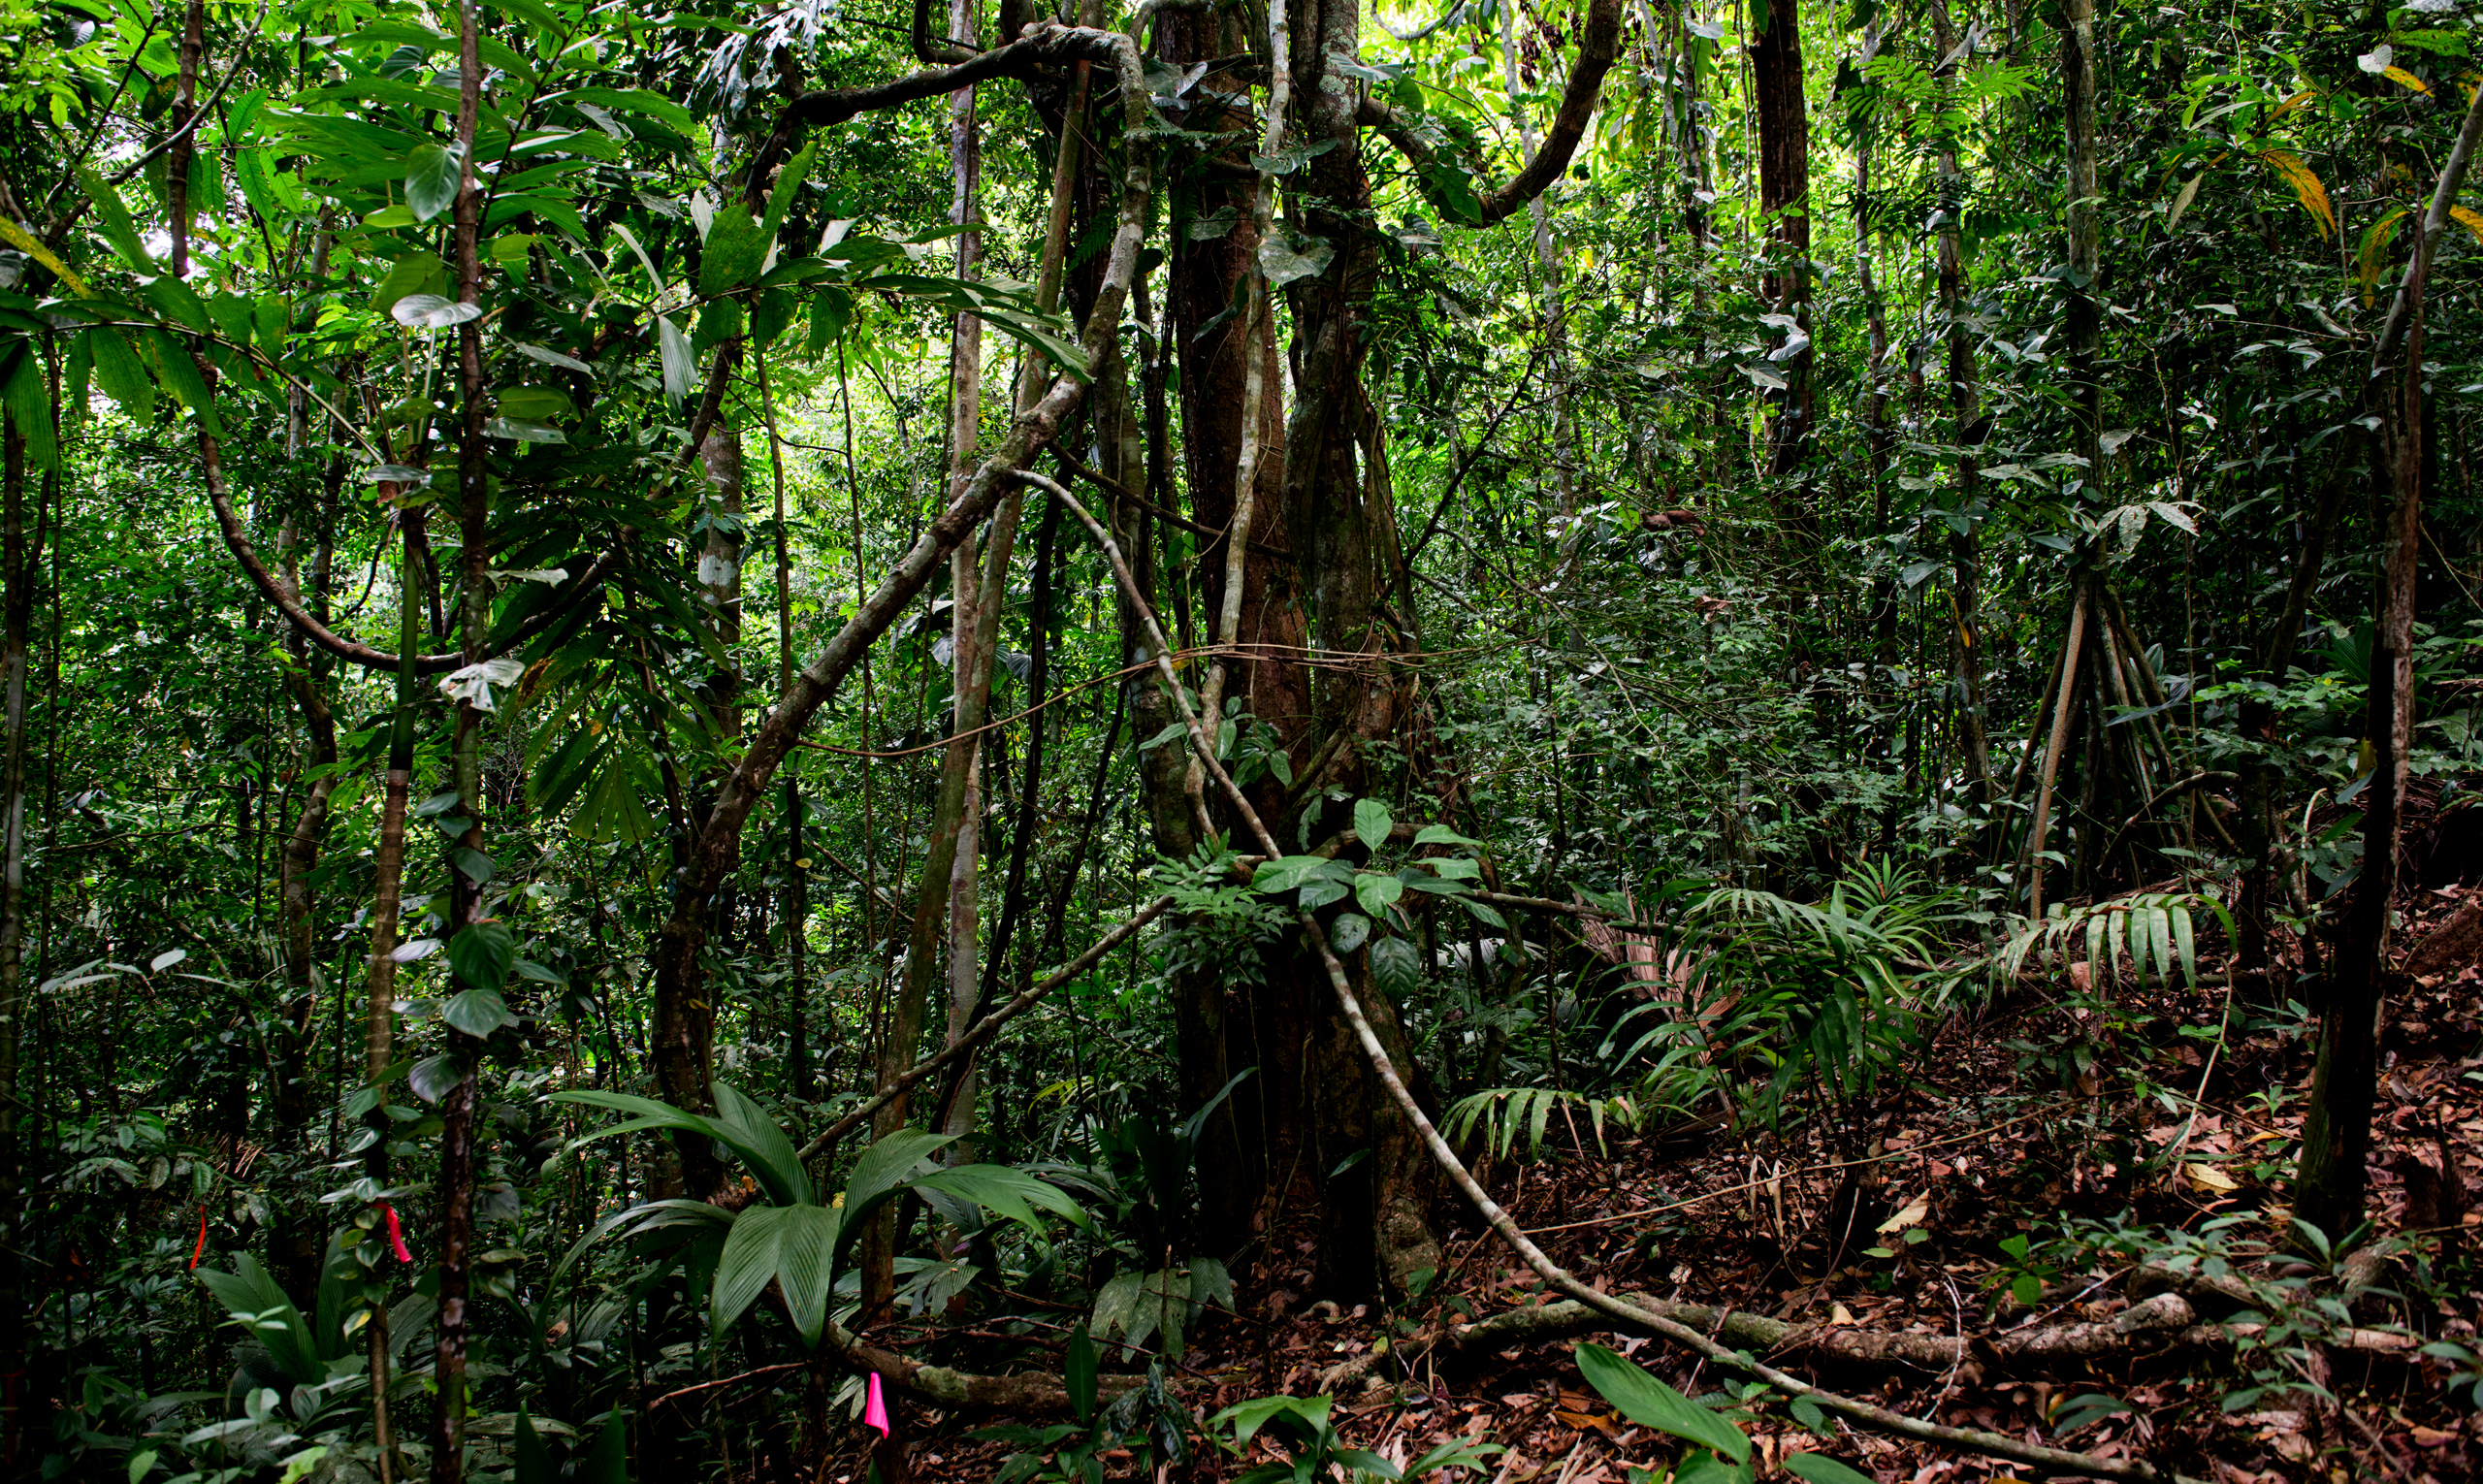 Tropical forests store almost 30 percent of terrestrial carbon worldwide, a critical buffer against climate change